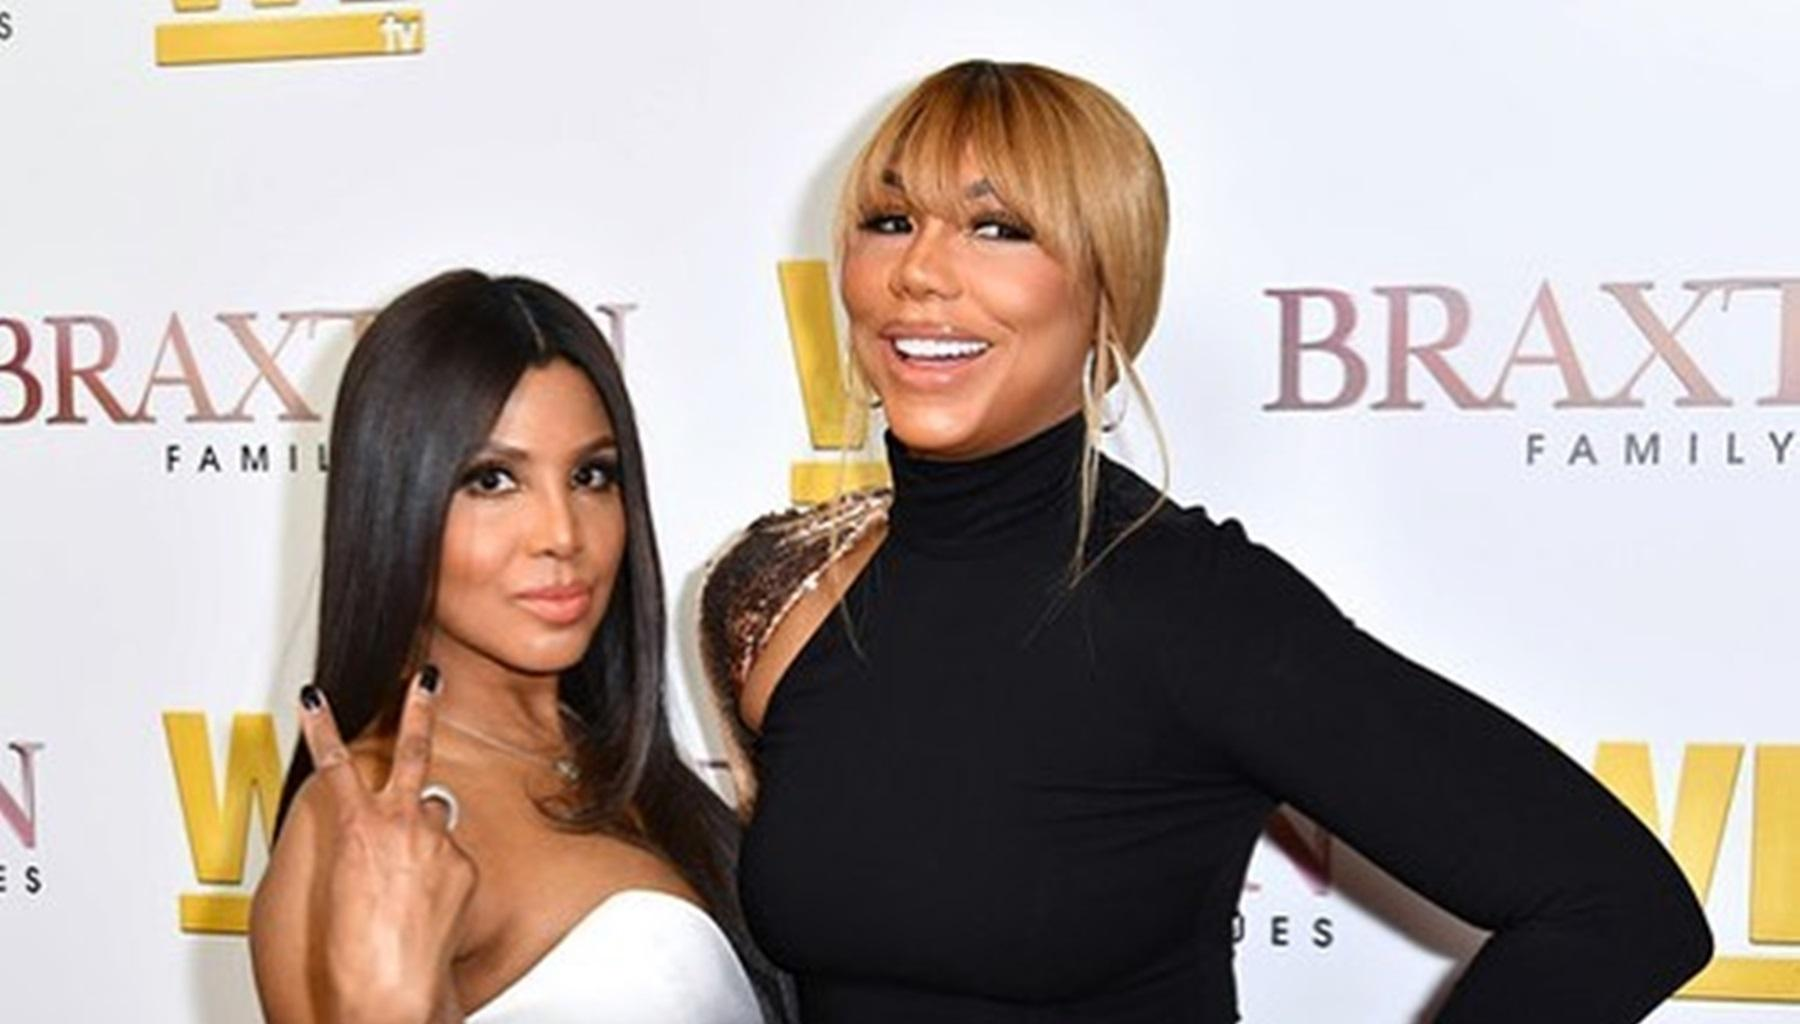 Tamar Braxton Yells 'What The F' After Toni Braxton Lights Up Instagram With Another Revealing Photo Flaunting Her Weight Loss